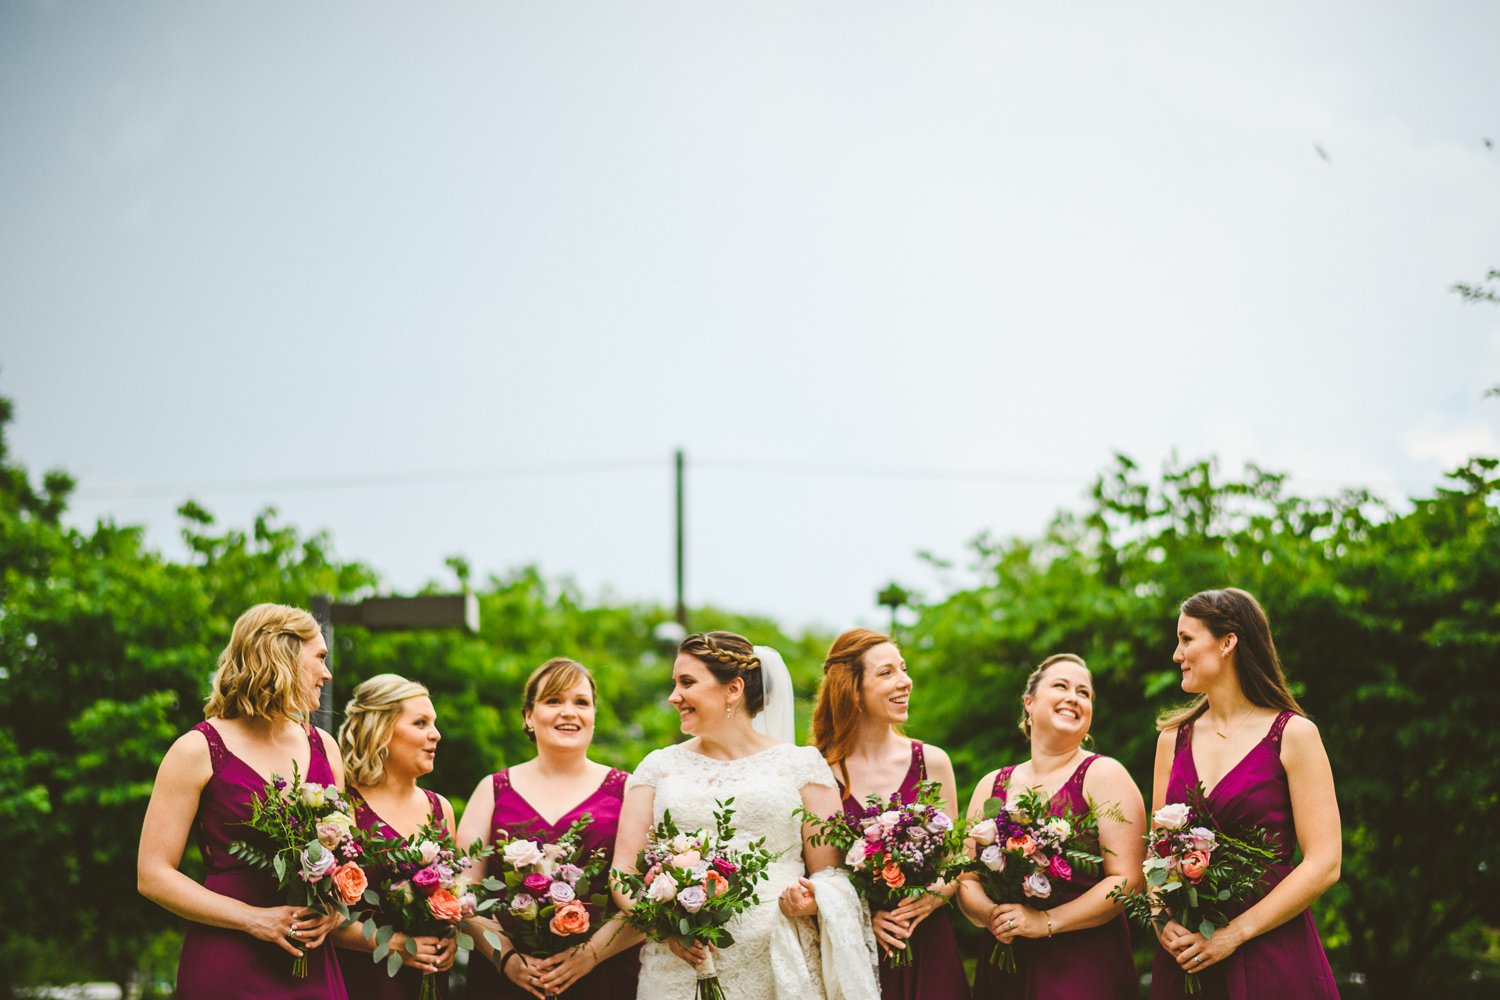 005 - bride laughing with bridesmaids in front of green trees.jpg